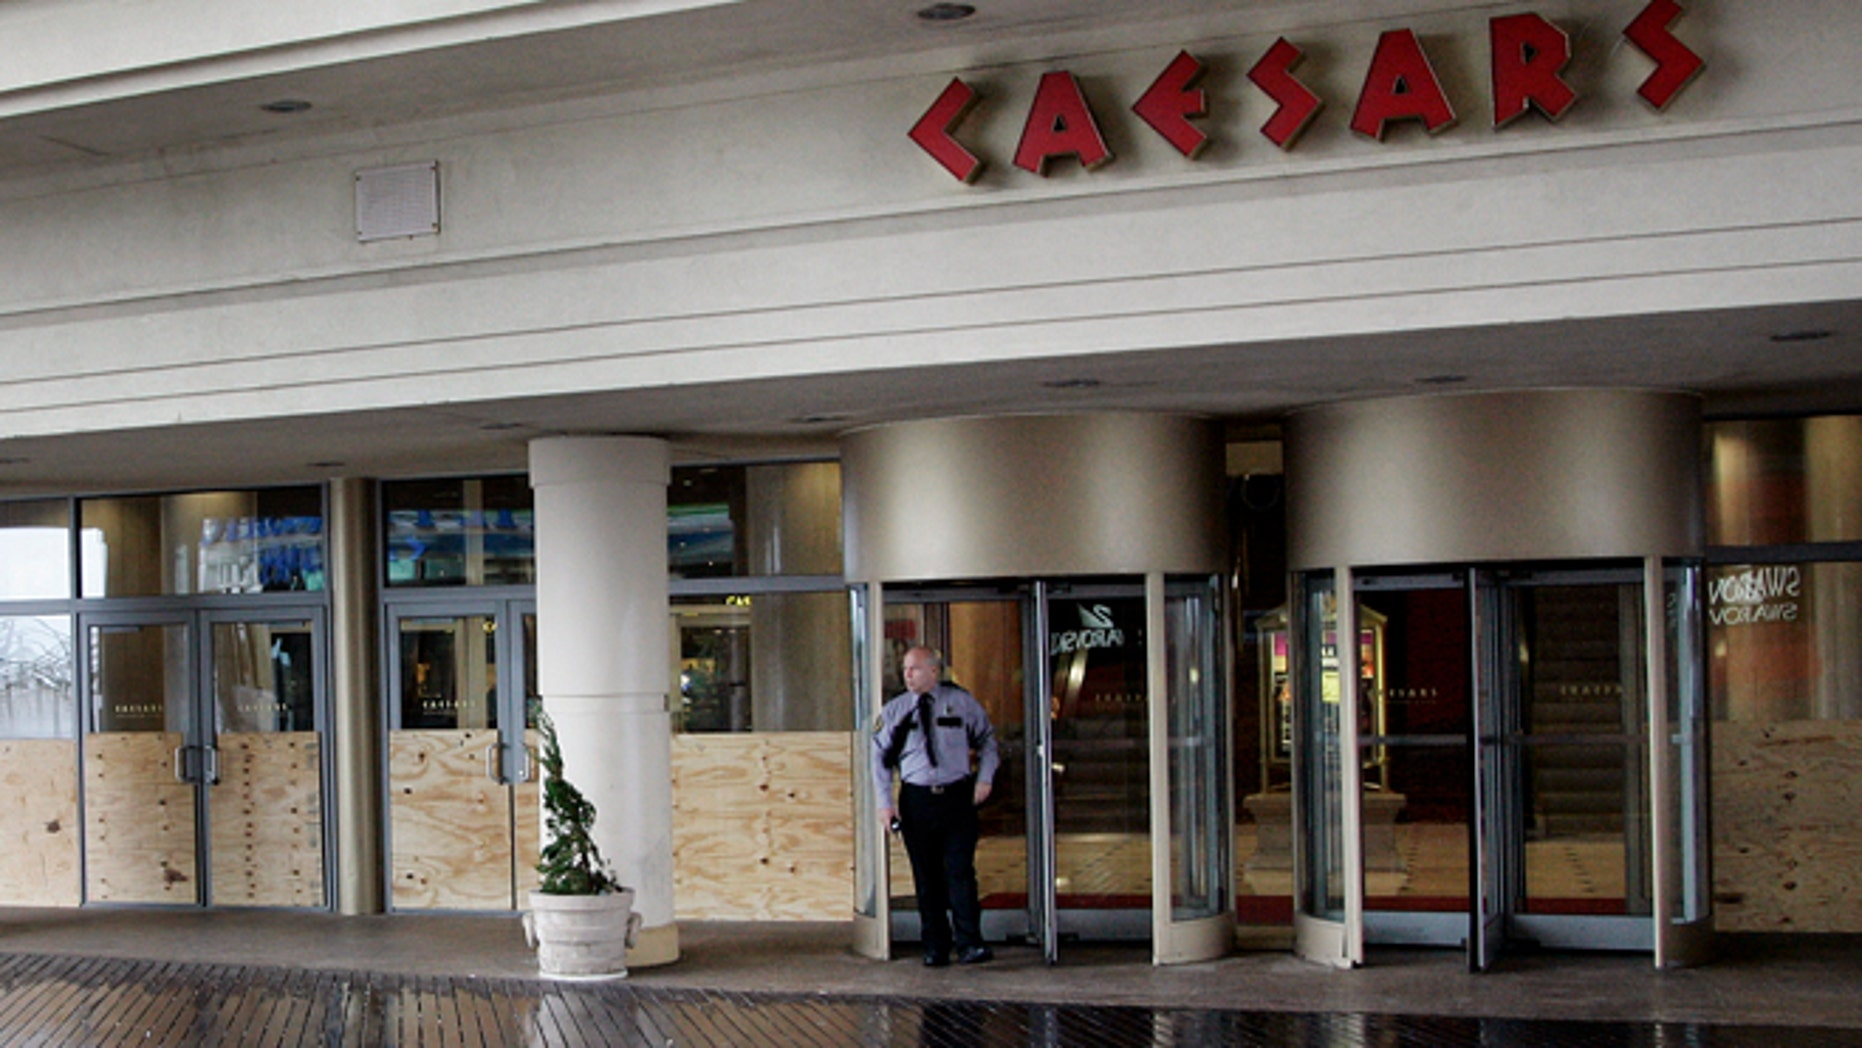 FILE: A security guard stands outside the entrance of Caesar's Casino on the Atlantic City boardwalk.